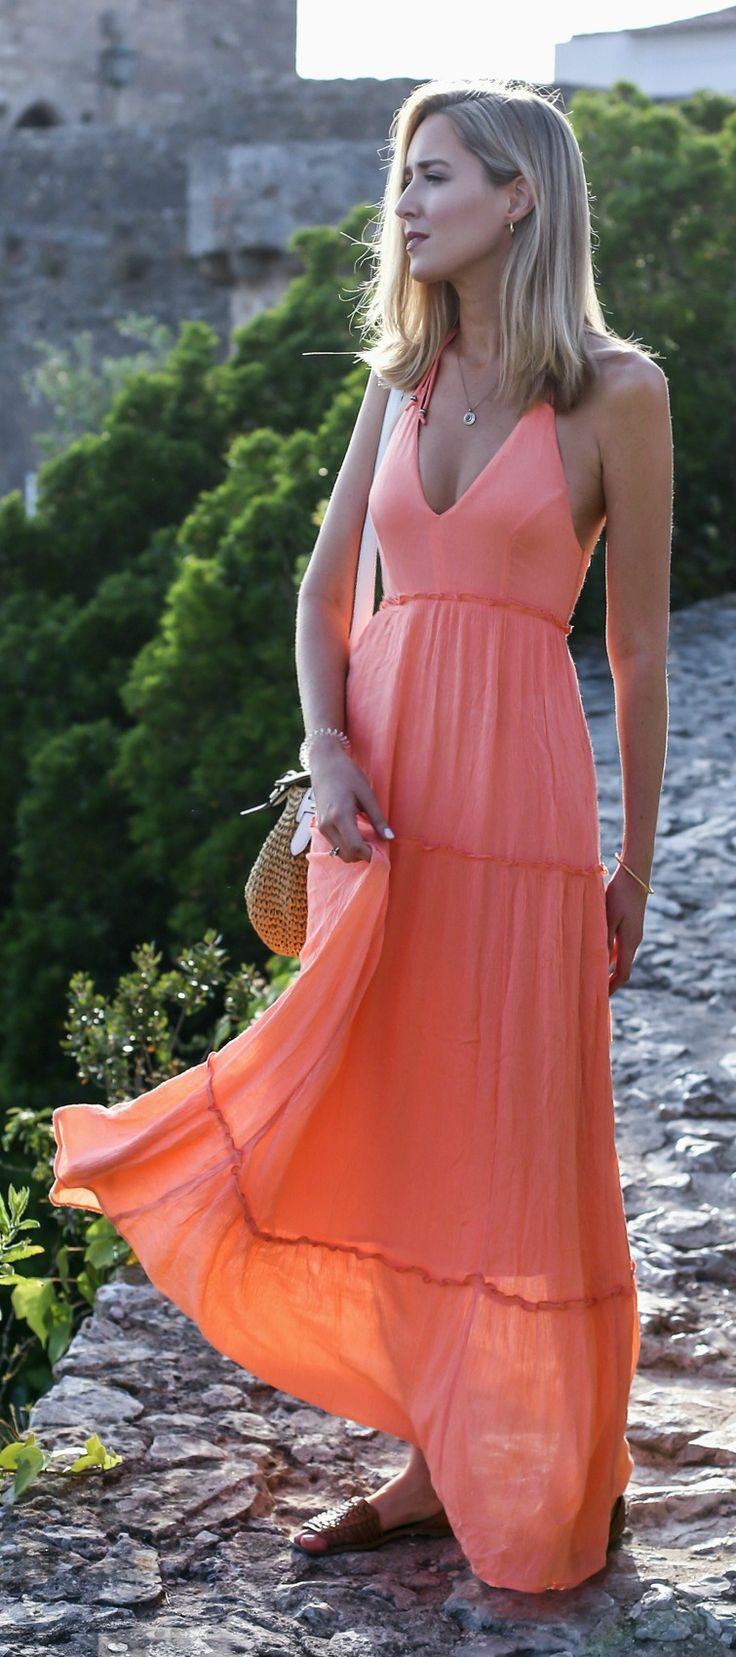 coral maxi dress, woven flats, woven handbag, pendant necklace {abercrombie & fitch, michael kors, melinda maria} {Portugal travel guide}